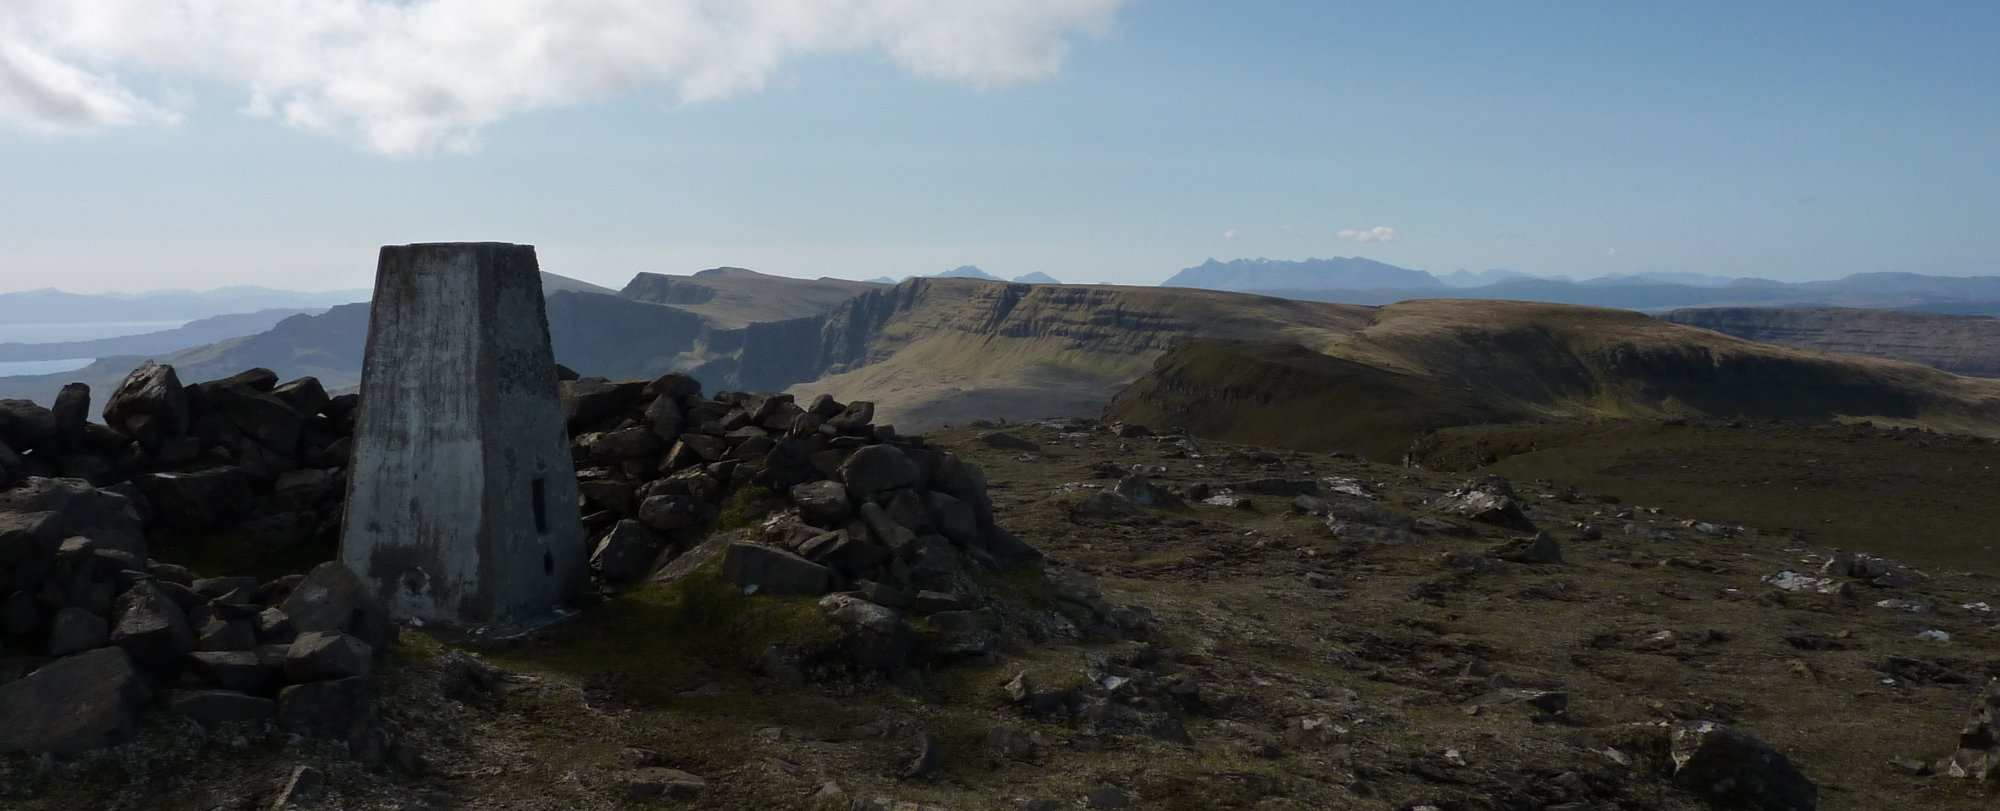 The view from Beinn Edra trig point